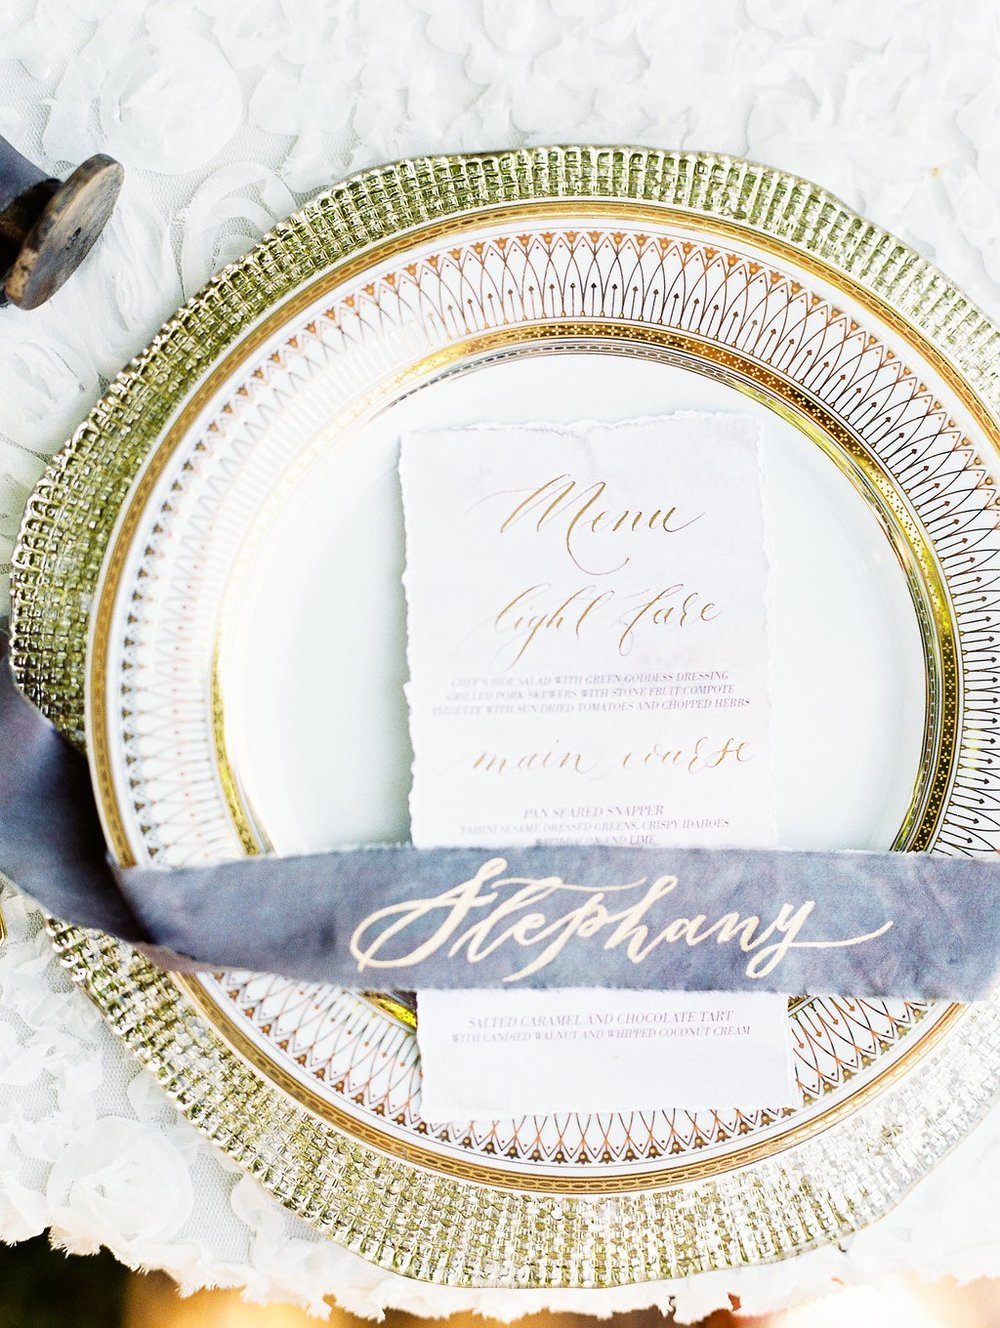 Calligraphy: Silverfox Calligraphy, Charger: The Rental Company, Linen: Mrs. Freund & Co.